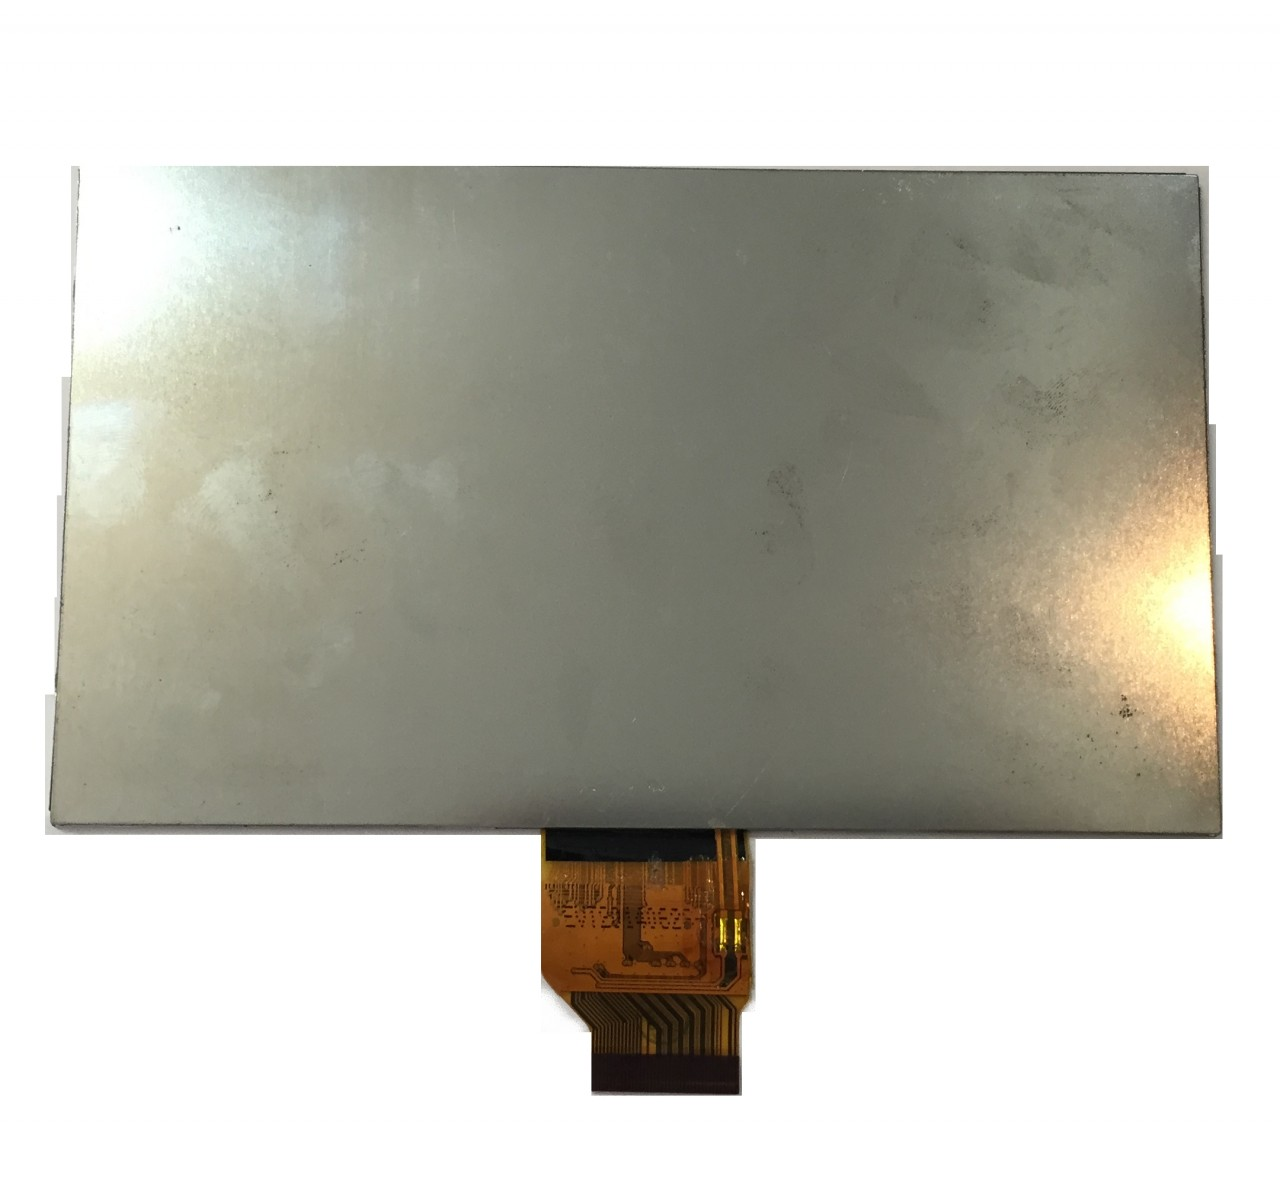 Display Utok i700 Ultra Ecran TN LCD Tableta ORIGINAL imagine powerlaptop.ro 2021